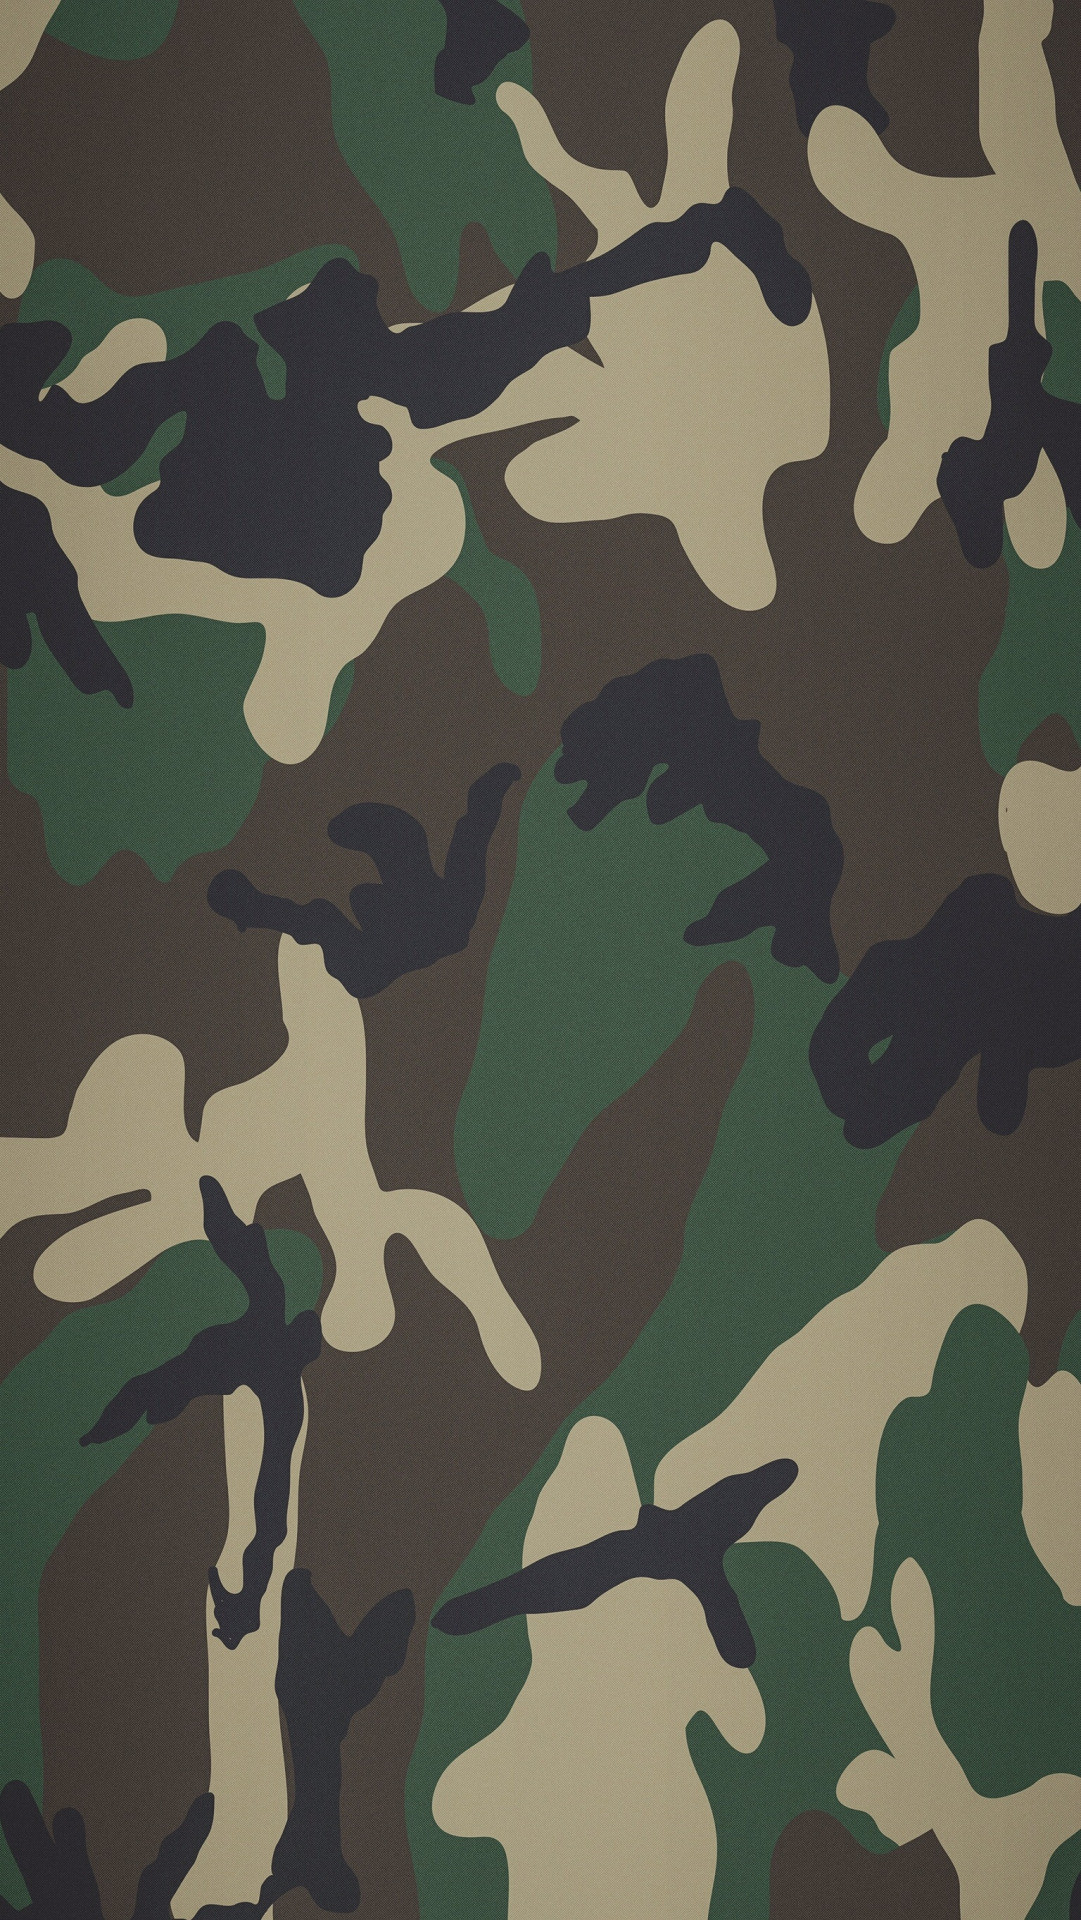 1081x1920, Camouflage Wallpapers For Phones Px   Data - High Resolution Camo Background - HD Wallpaper